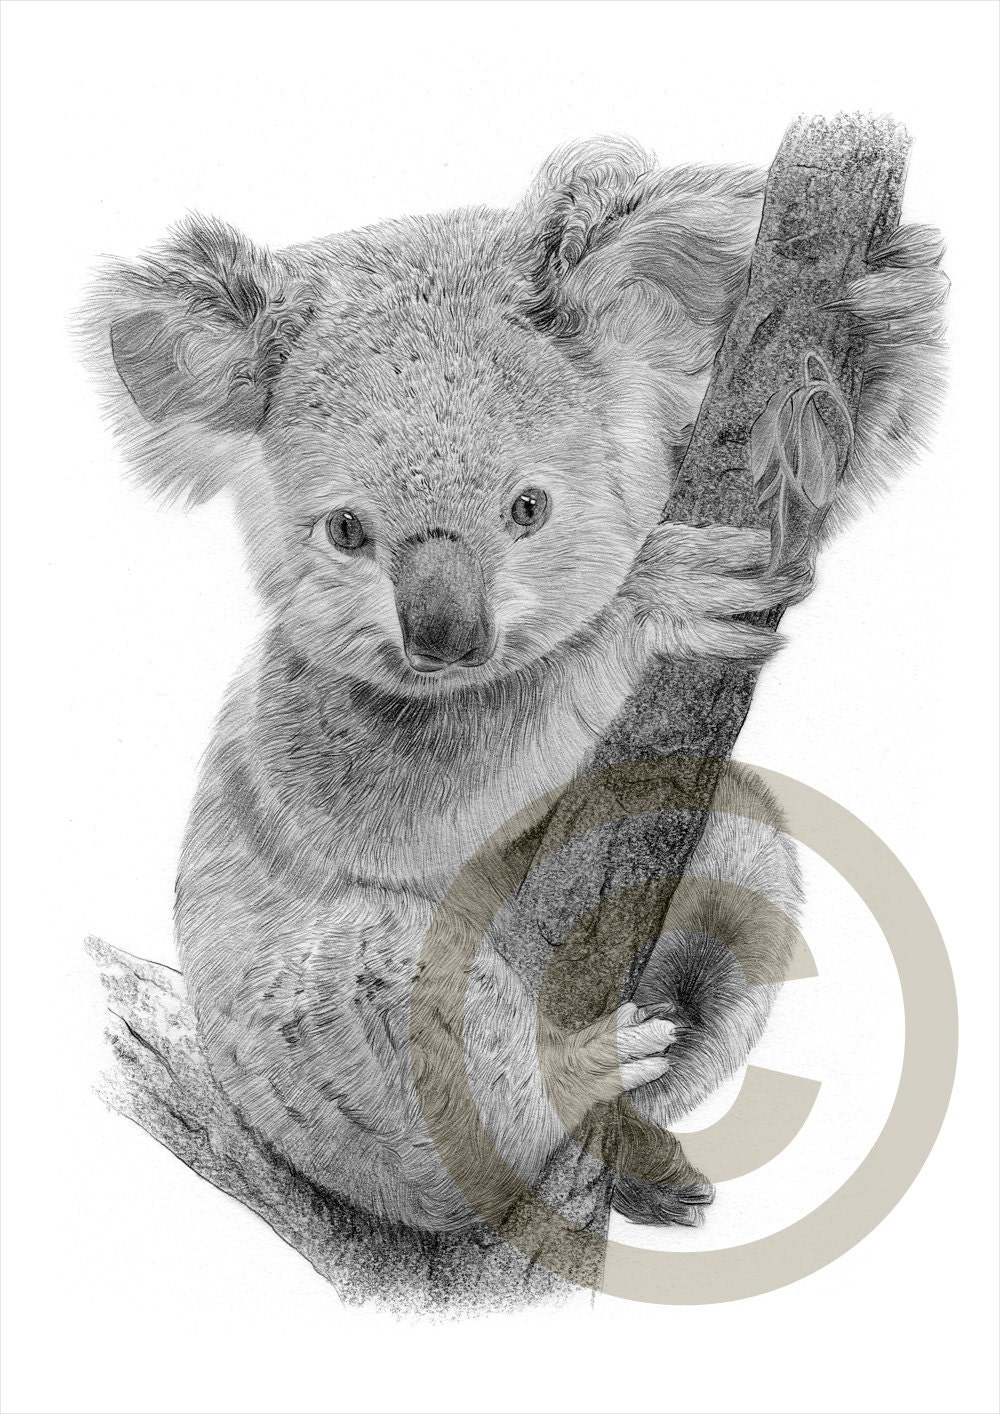 Baby Koala pencil drawing print A4 size artwork signed by